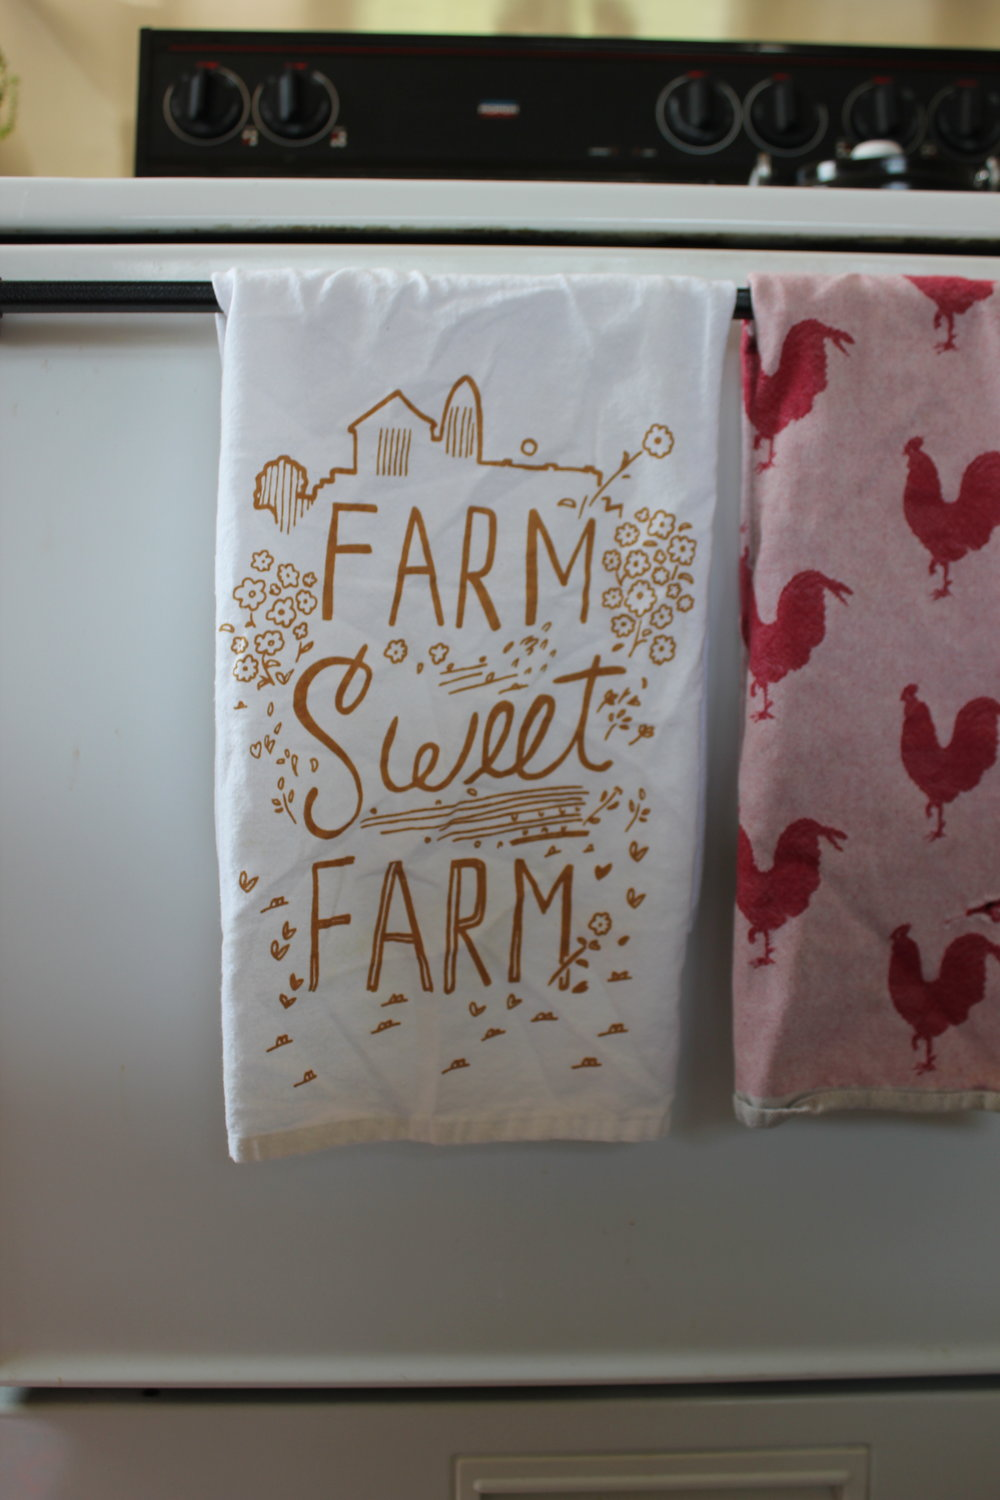 farm sweet farm and rooster kitchen towels.JPG